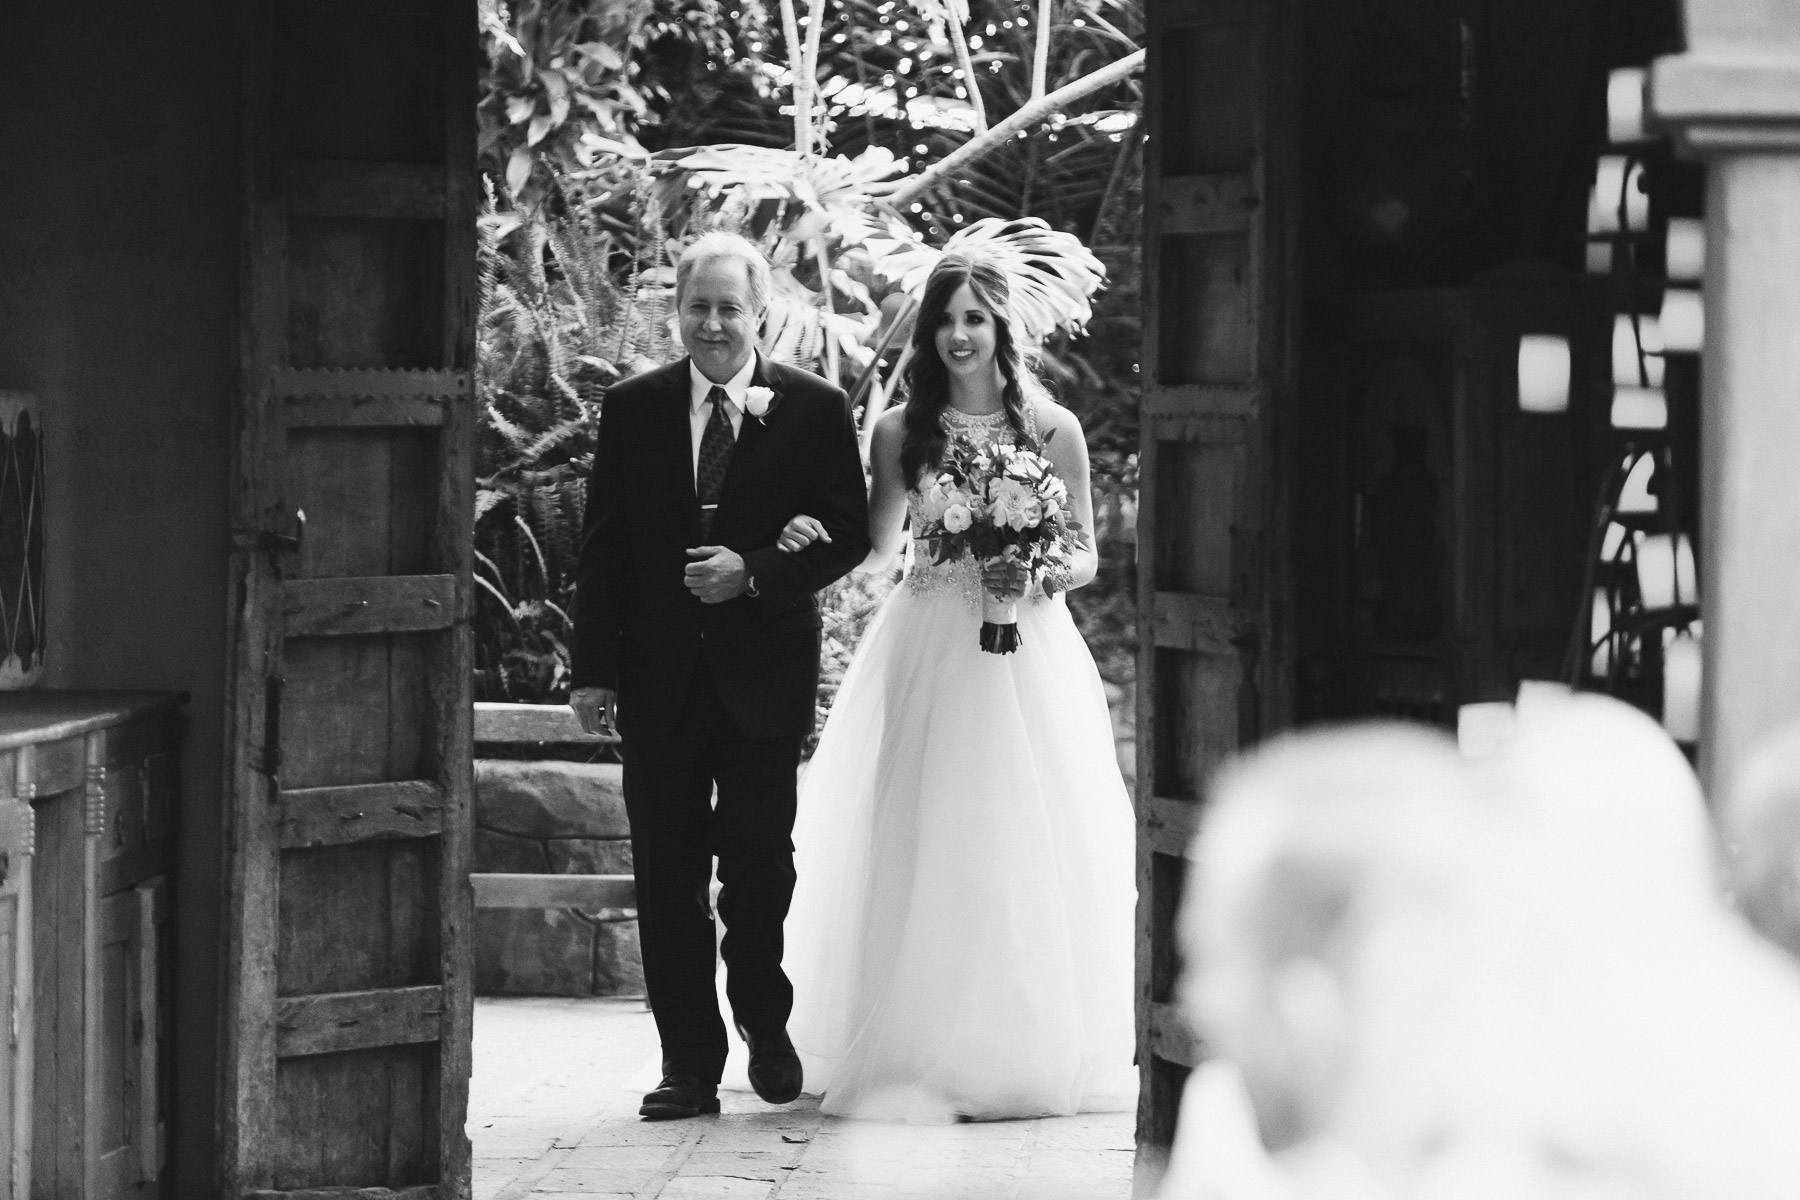 161112-Luxium-Weddings-Arizona-Jon-Madison-Boojum-Tree-First-Look-022.jpg